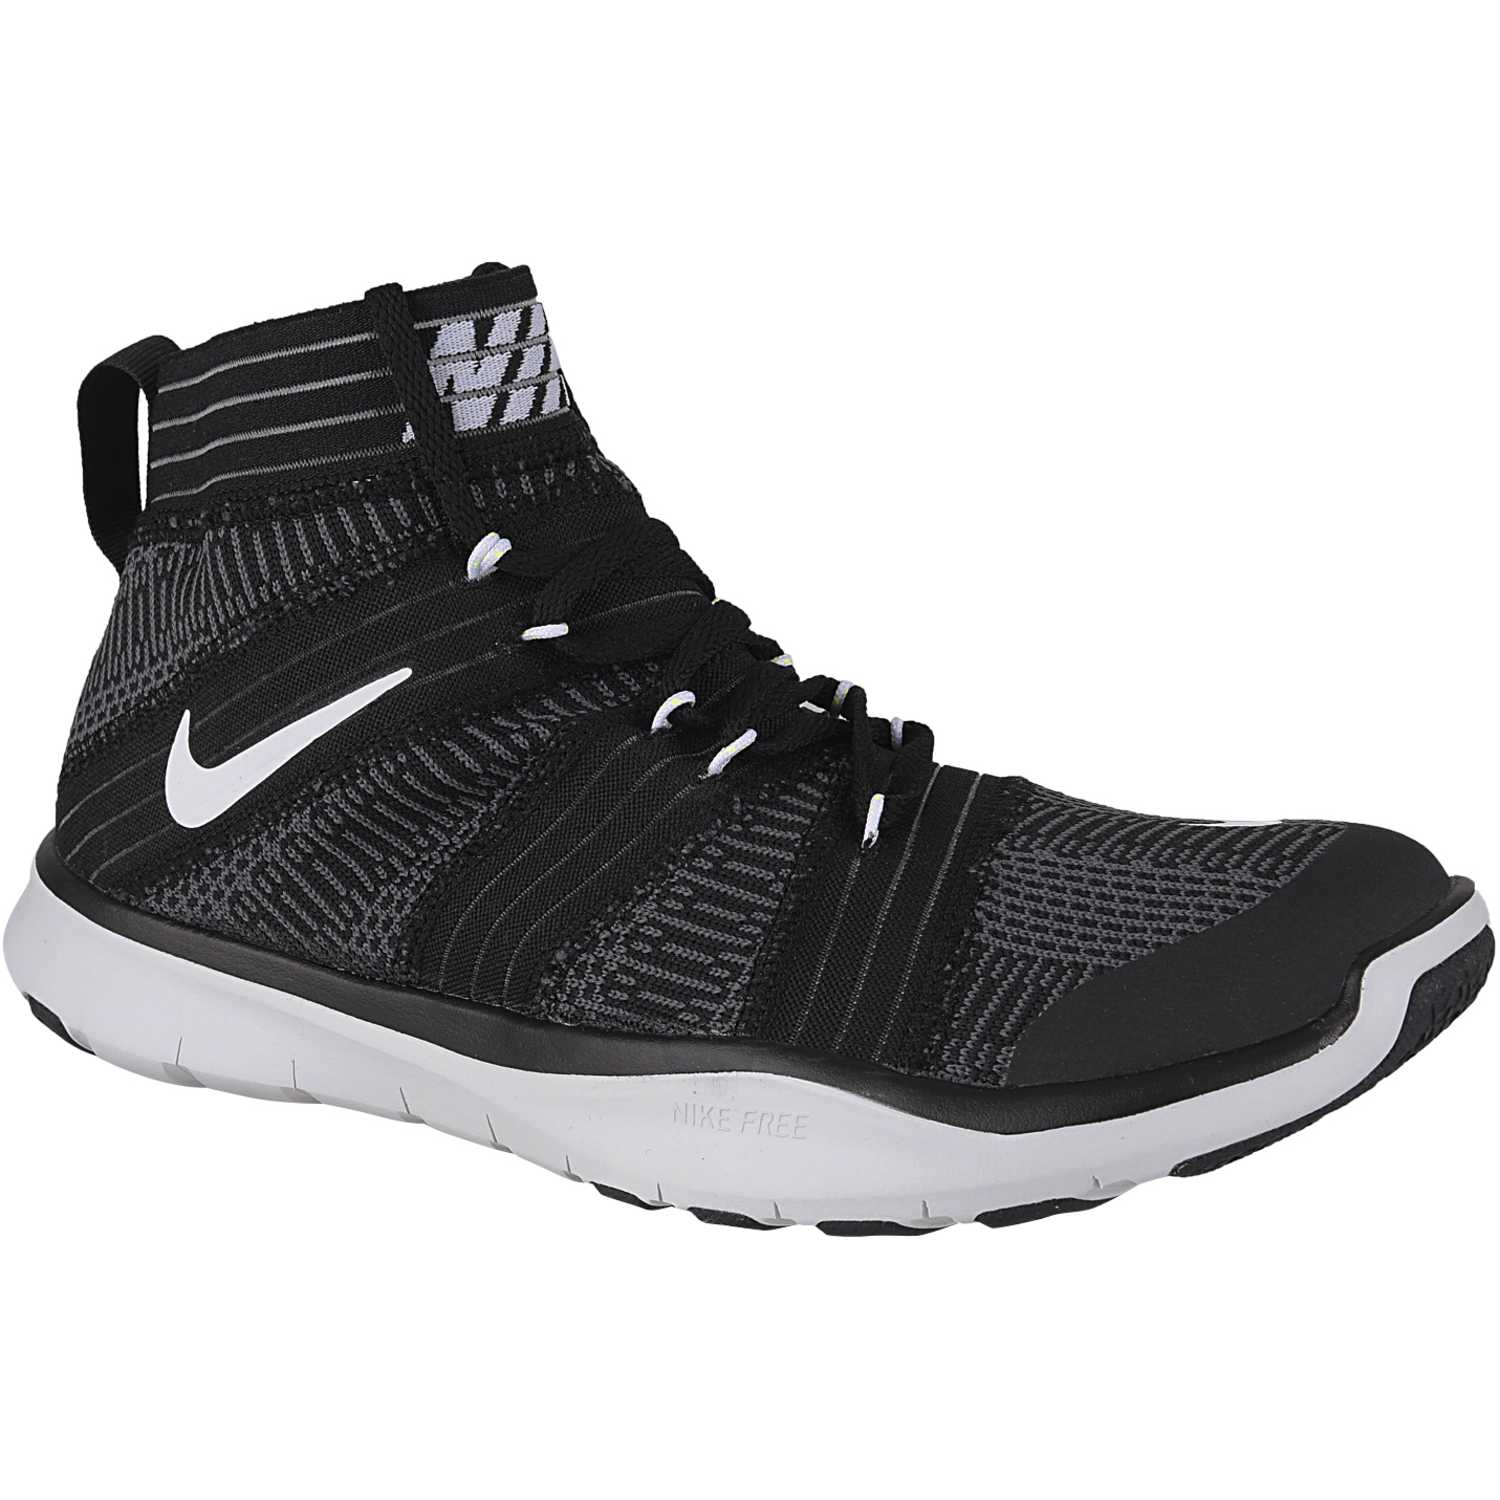 7eb13000be8c ... closeout zapatilla de hombre nike negro blanco free train virtue 188bf  e7903